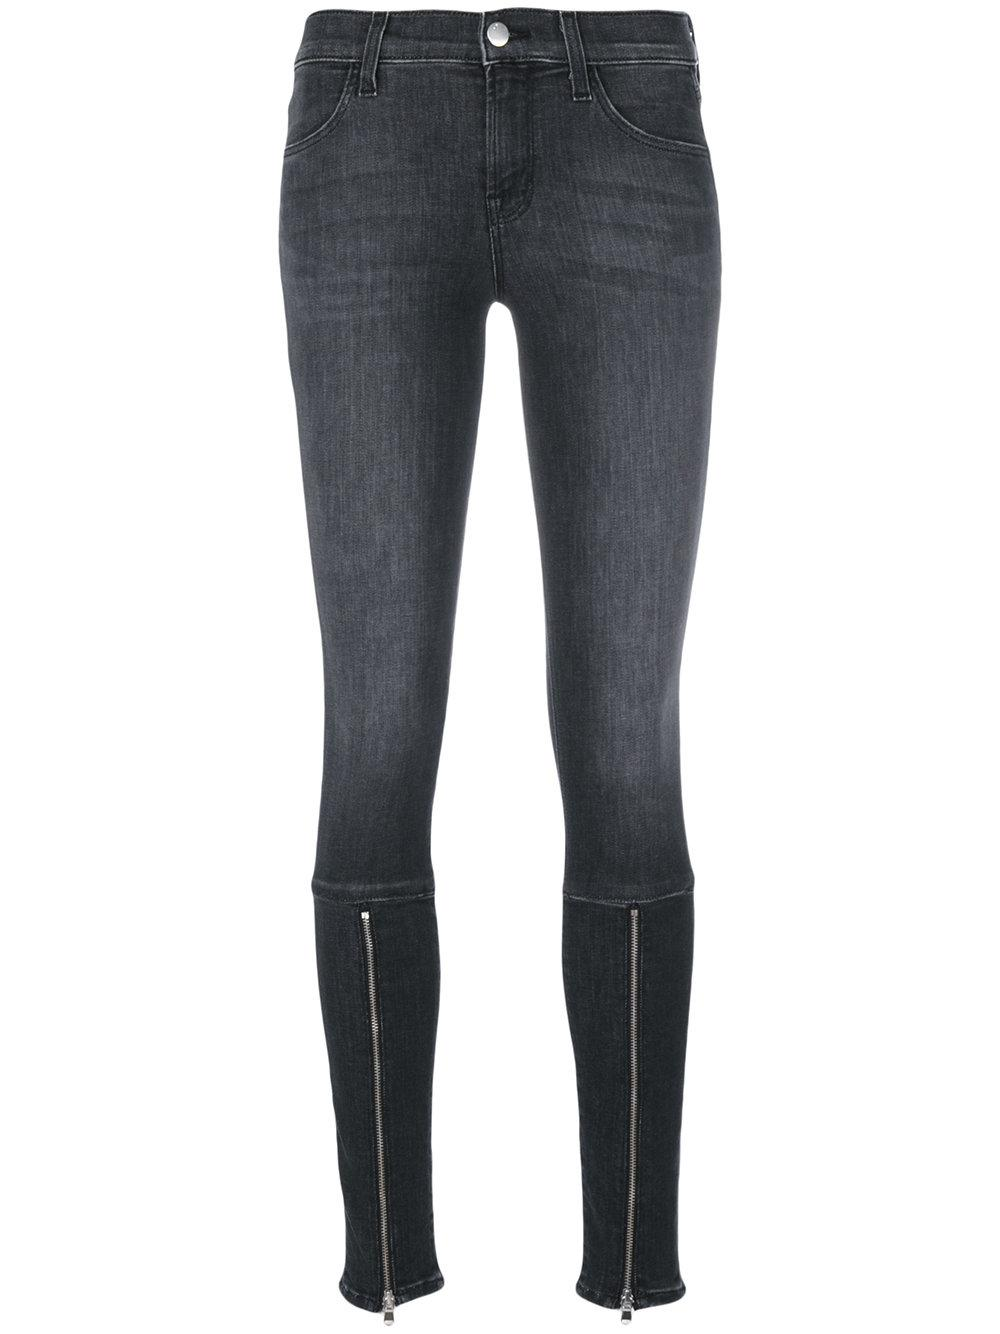 SHOPBOP - Skinny Jeans FASTEST FREE SHIPPING WORLDWIDE on Skinny Jeans & FREE EASY RETURNS.